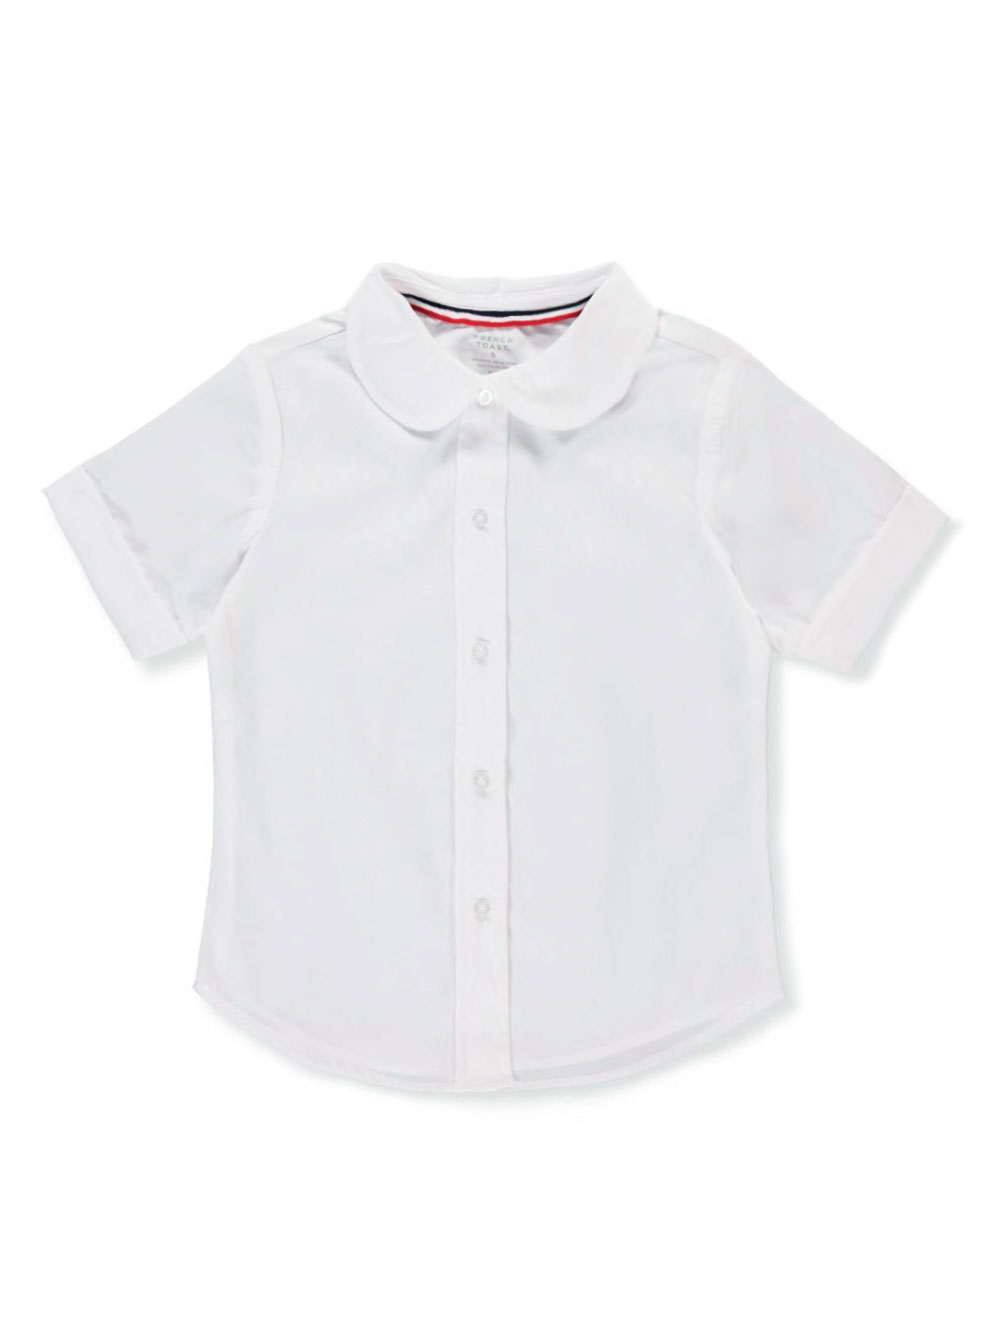 Image of French Toast School Uniform SS Peter Pan Fitted Shirt Sizes 4  6X  white 4